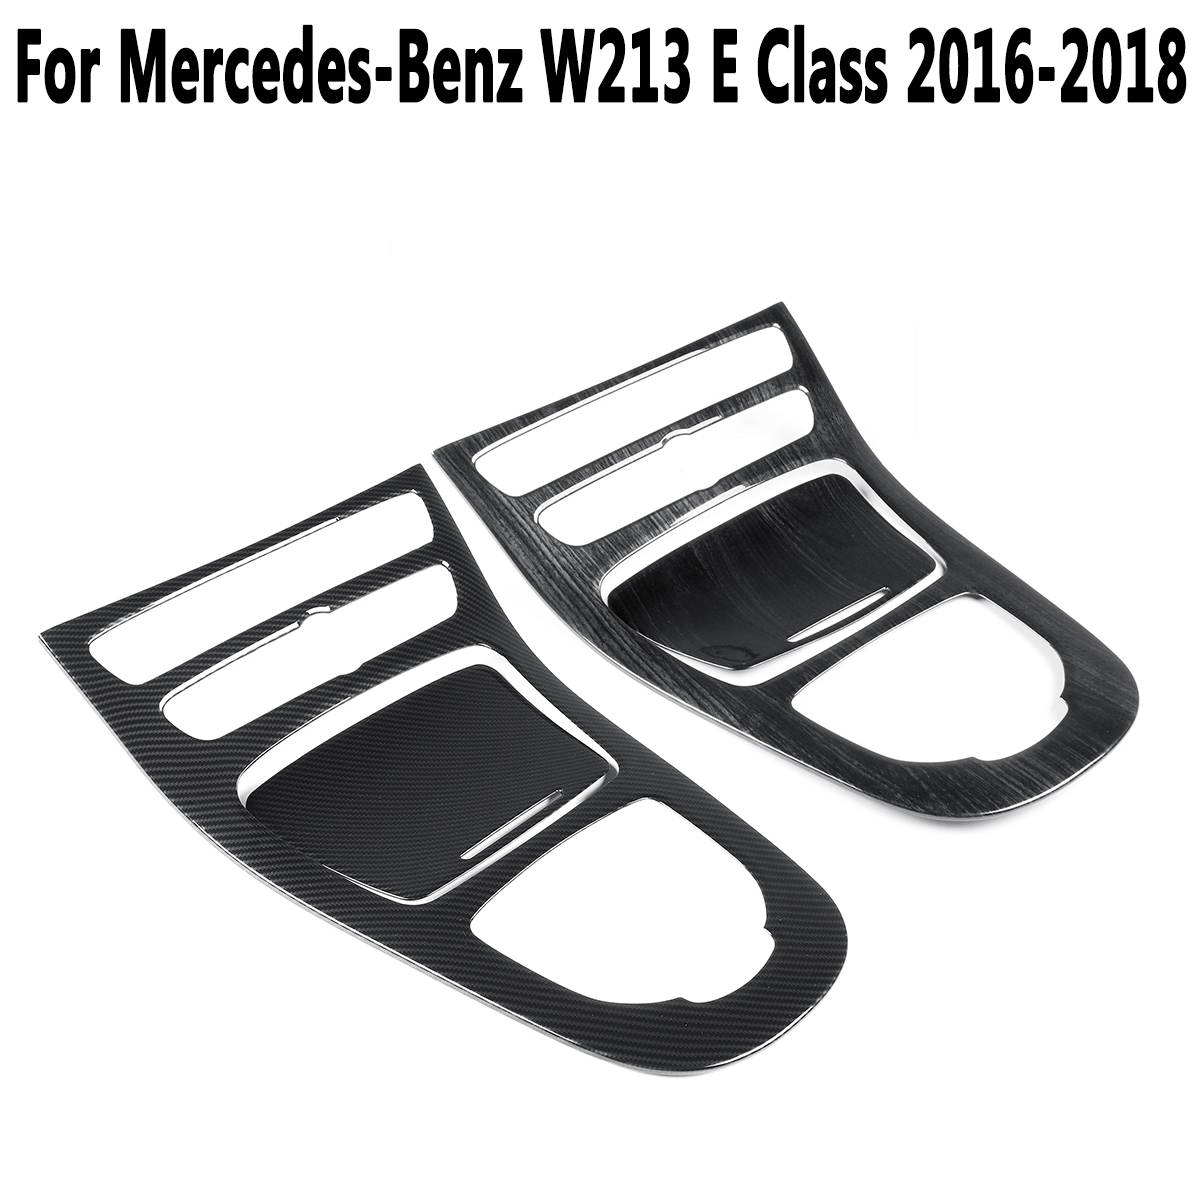 For Mercedes-Benz W213 E Class 2016 2017 2018 Console Gear Panel Frame Cover Trim ABS Carbon Fiber Color Trim Stickers PartsFor Mercedes-Benz W213 E Class 2016 2017 2018 Console Gear Panel Frame Cover Trim ABS Carbon Fiber Color Trim Stickers Parts